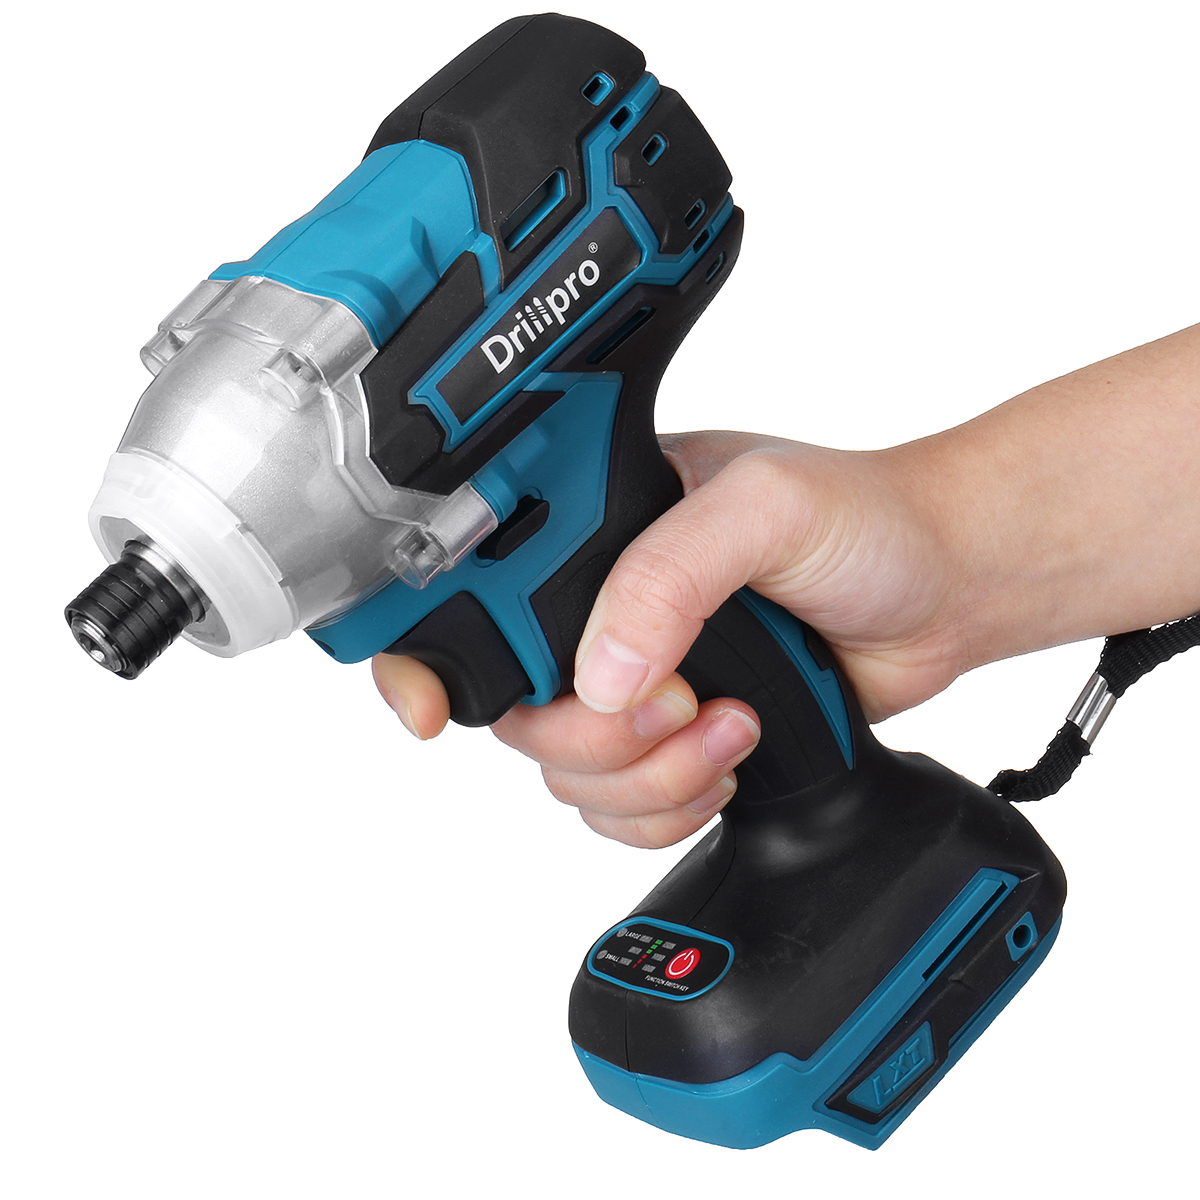 Tools : 18V Cordless Electric Screwdriver Speed Brushless Impact Wrench Rechargable Drill Driver LED Light For Makita Battery